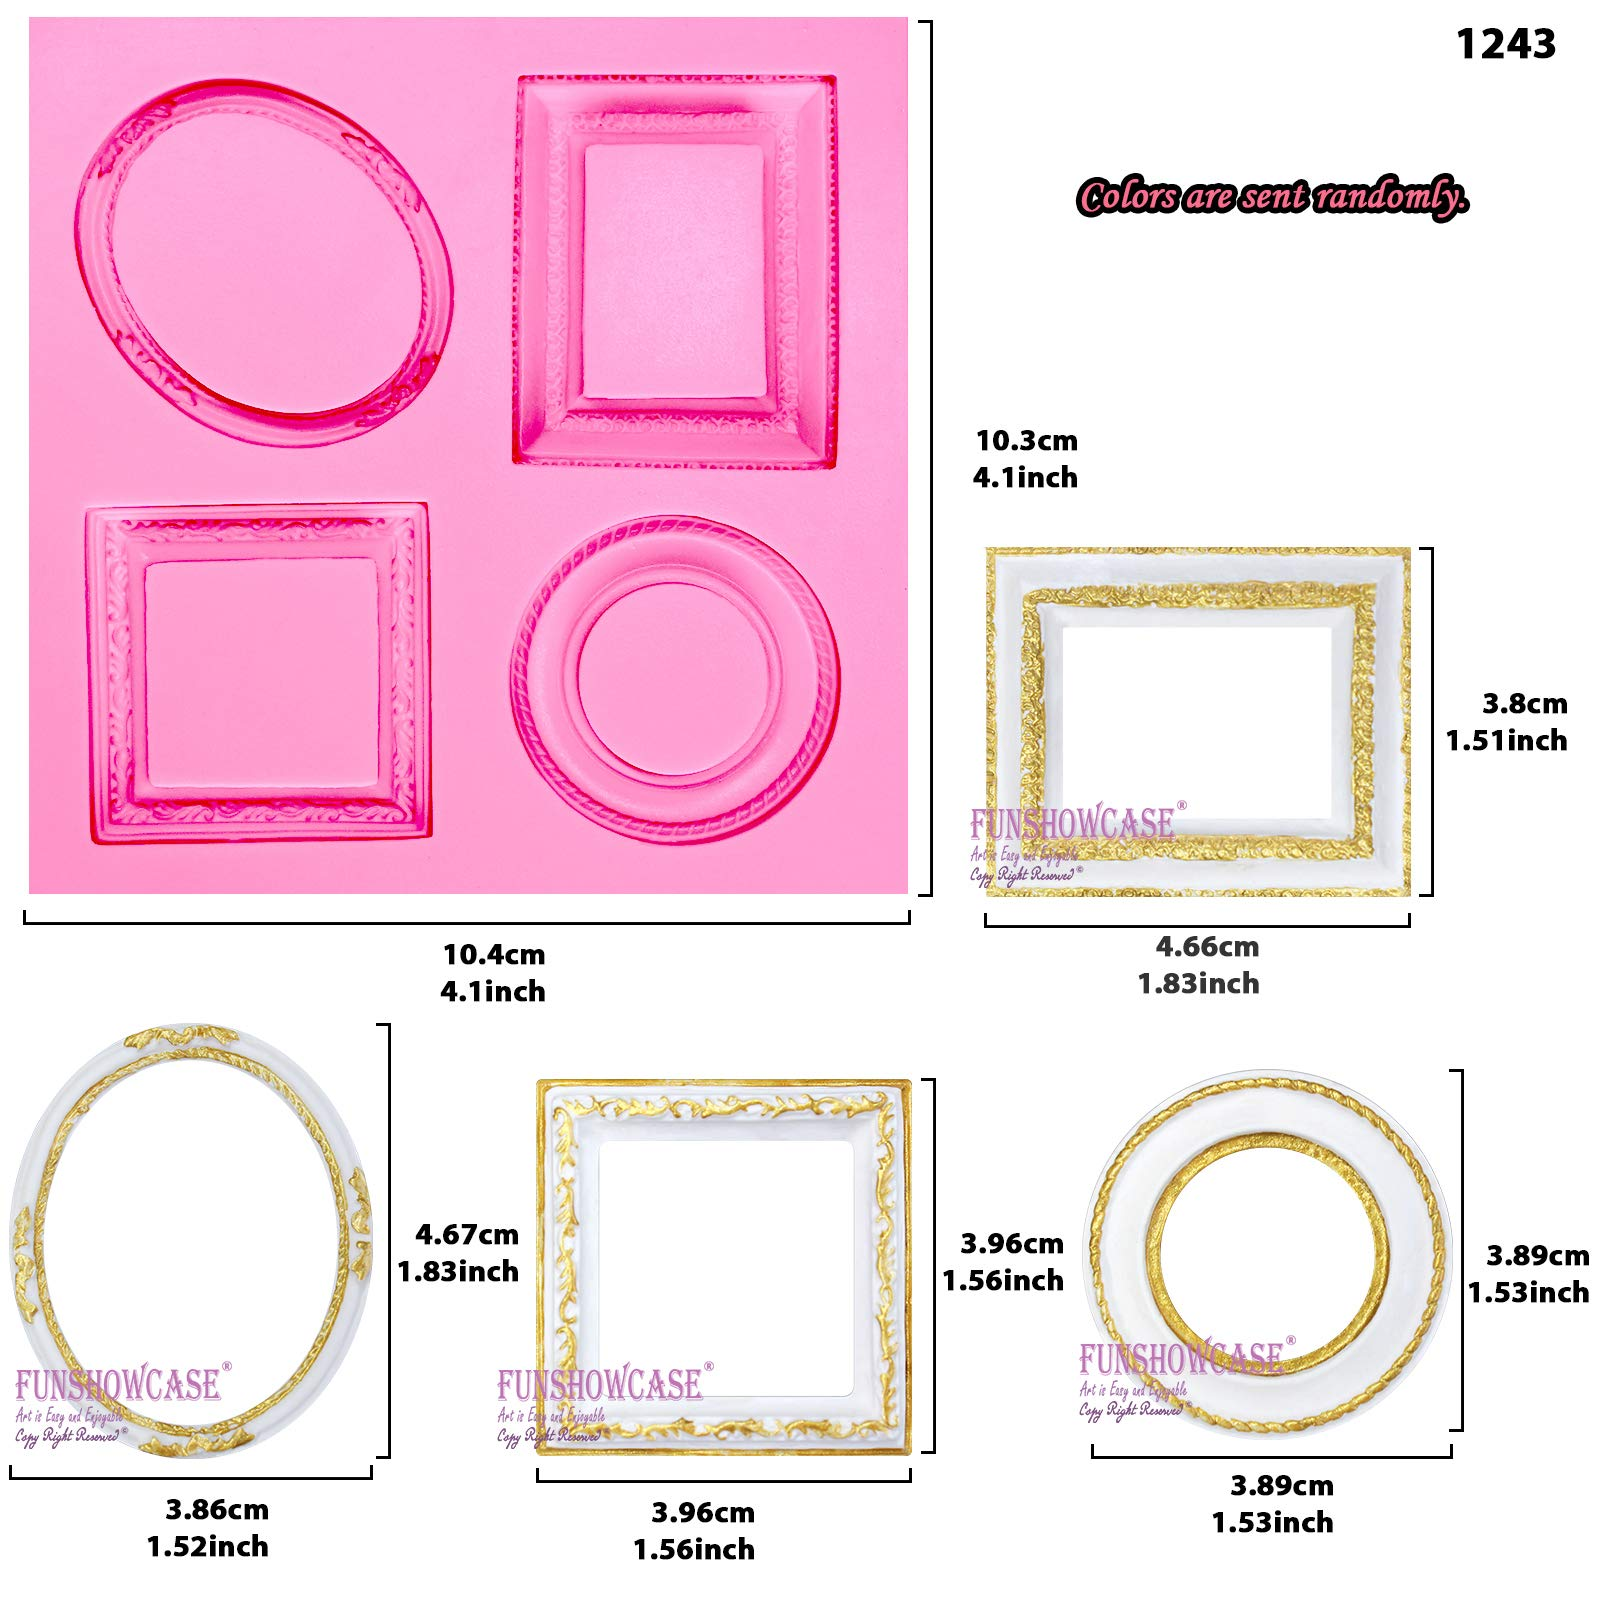 Funshowcase Mirror Frame Candy Silicone Mold, 3 in Set for Sugarcraft, Cake Decoration, Cupcake Topper, Chocolate, Fondant, Jewelry, Polymer Clay, Epoxy Resin, Crafting Projects by FUNSHOWCASE (Image #3)